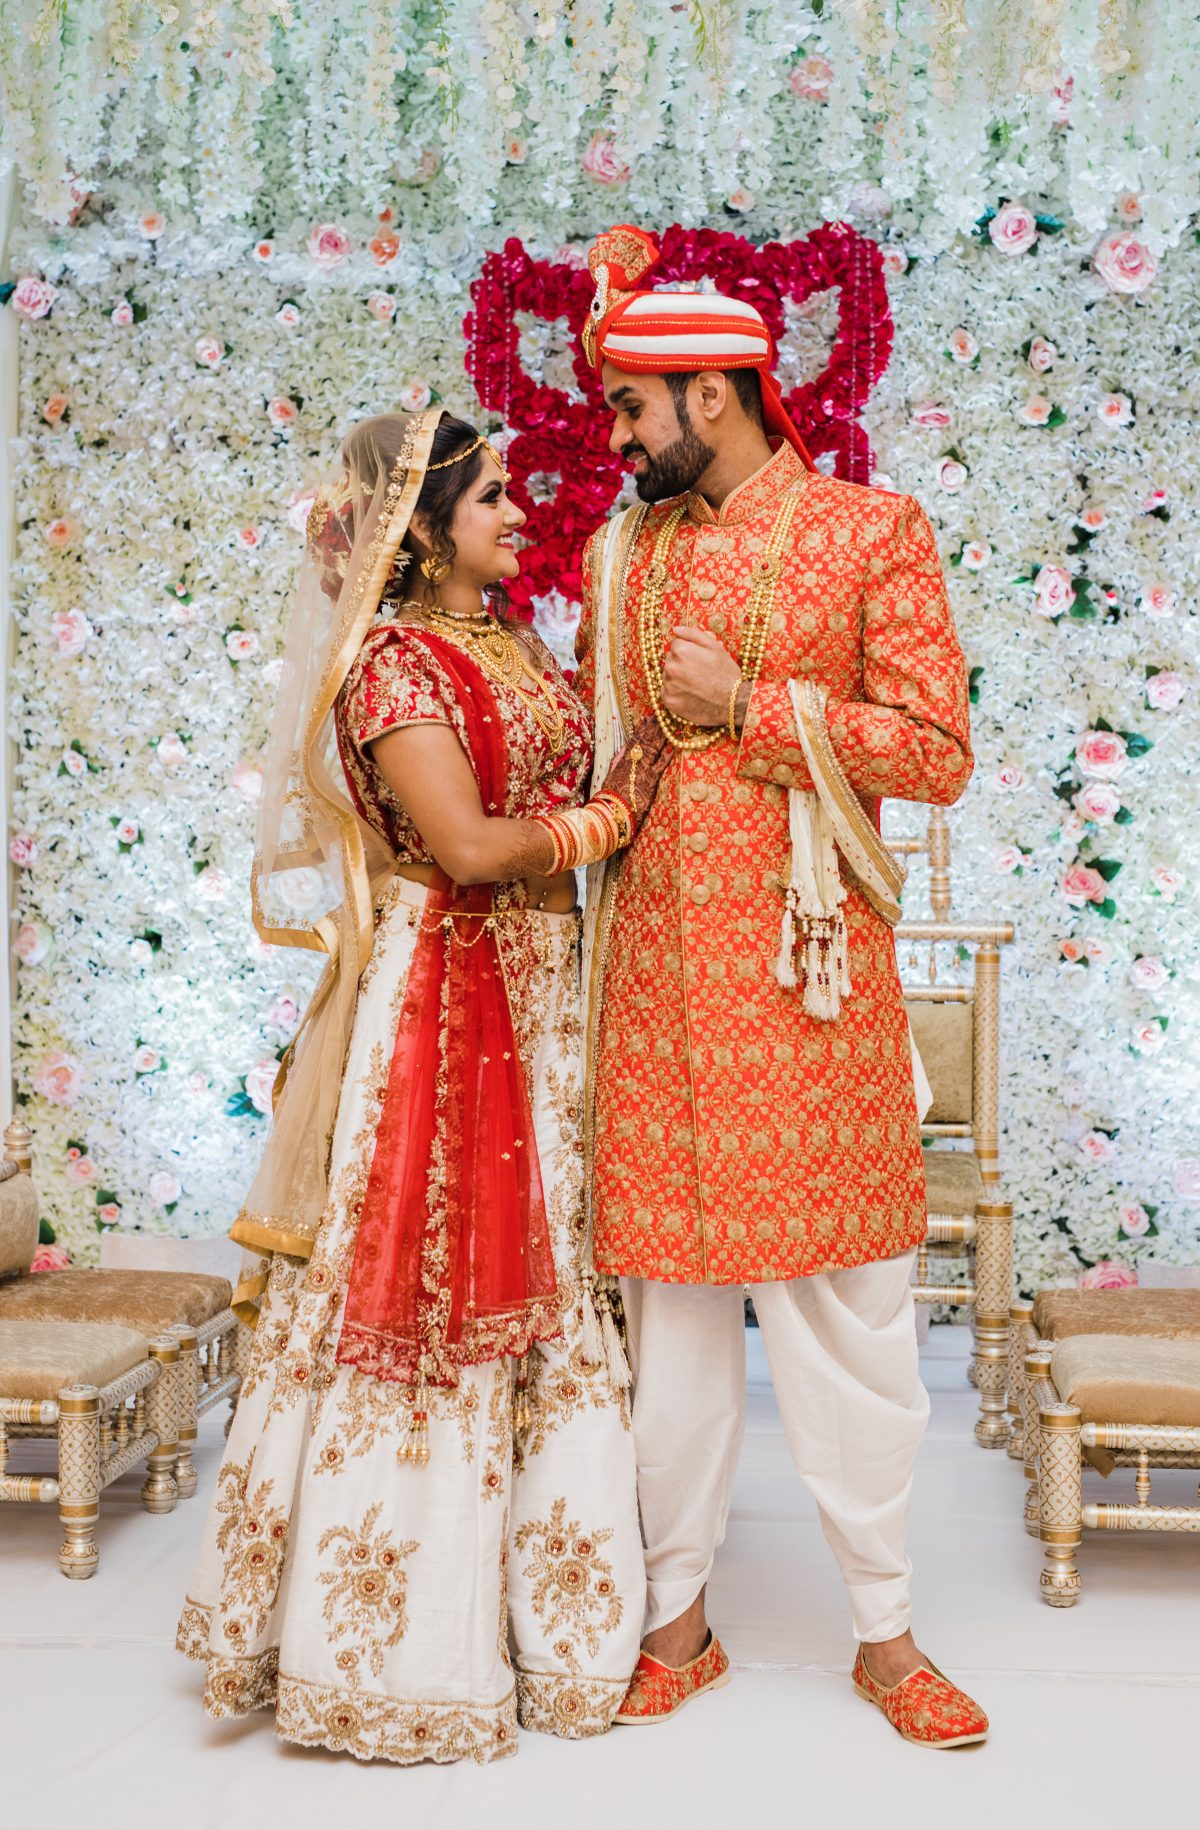 Elegant Indian Wedding Chicago DARS Photography (37)